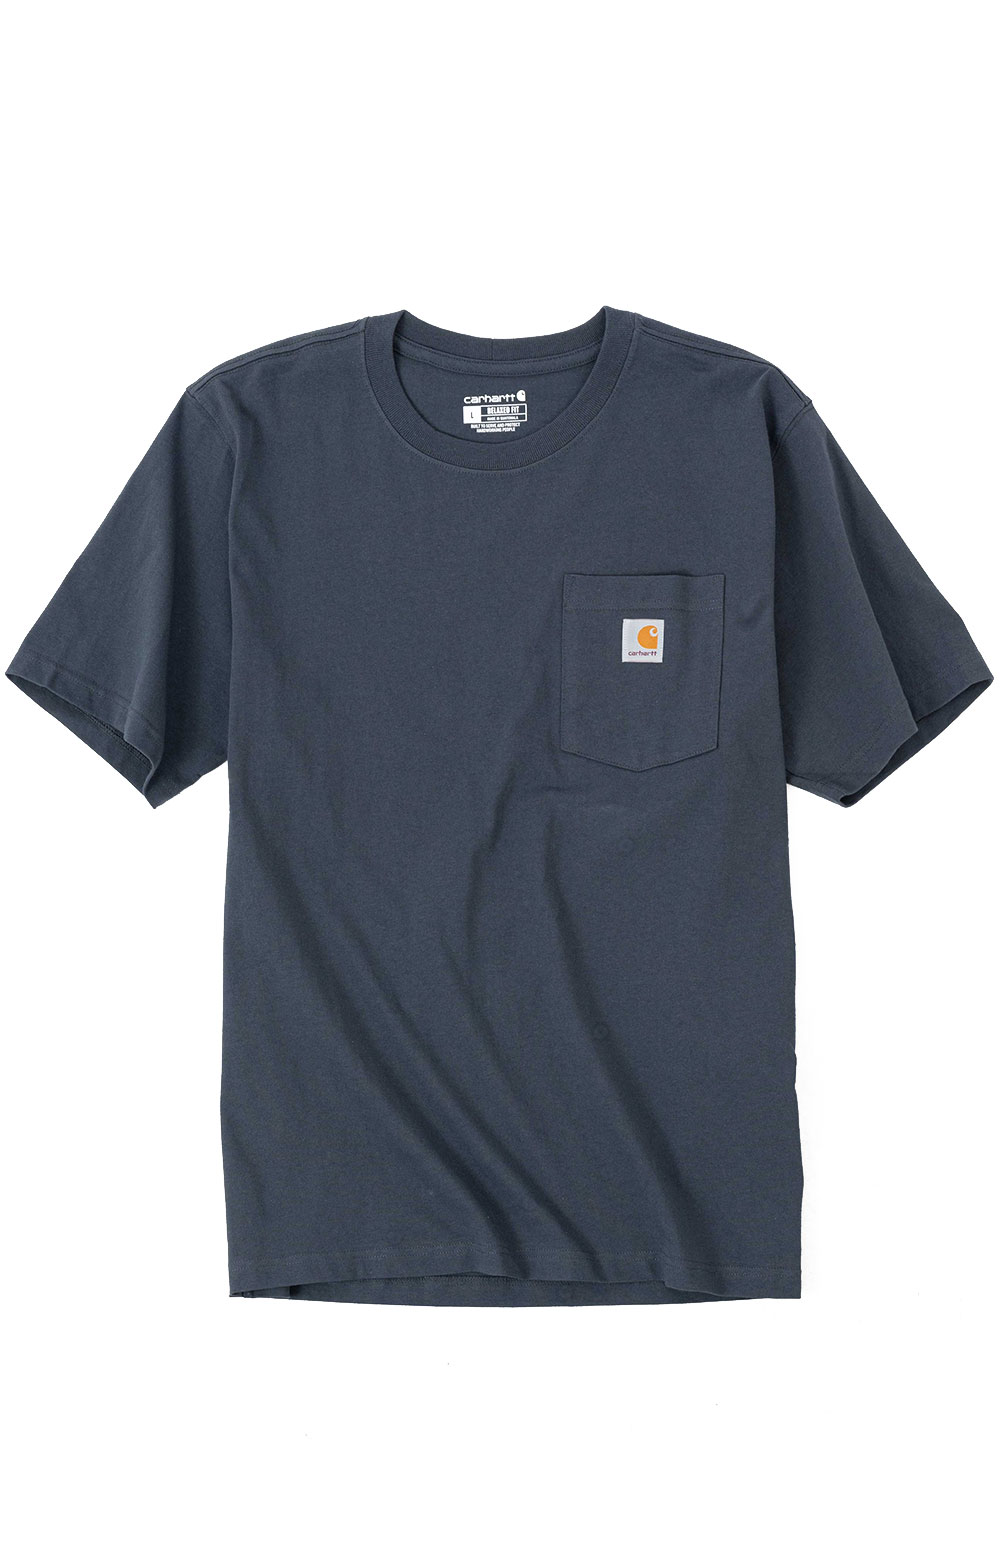 (104615) Relaxed Fit HW S/S Pocket Outdoor Graphic T-Shirt - Bluestone  2